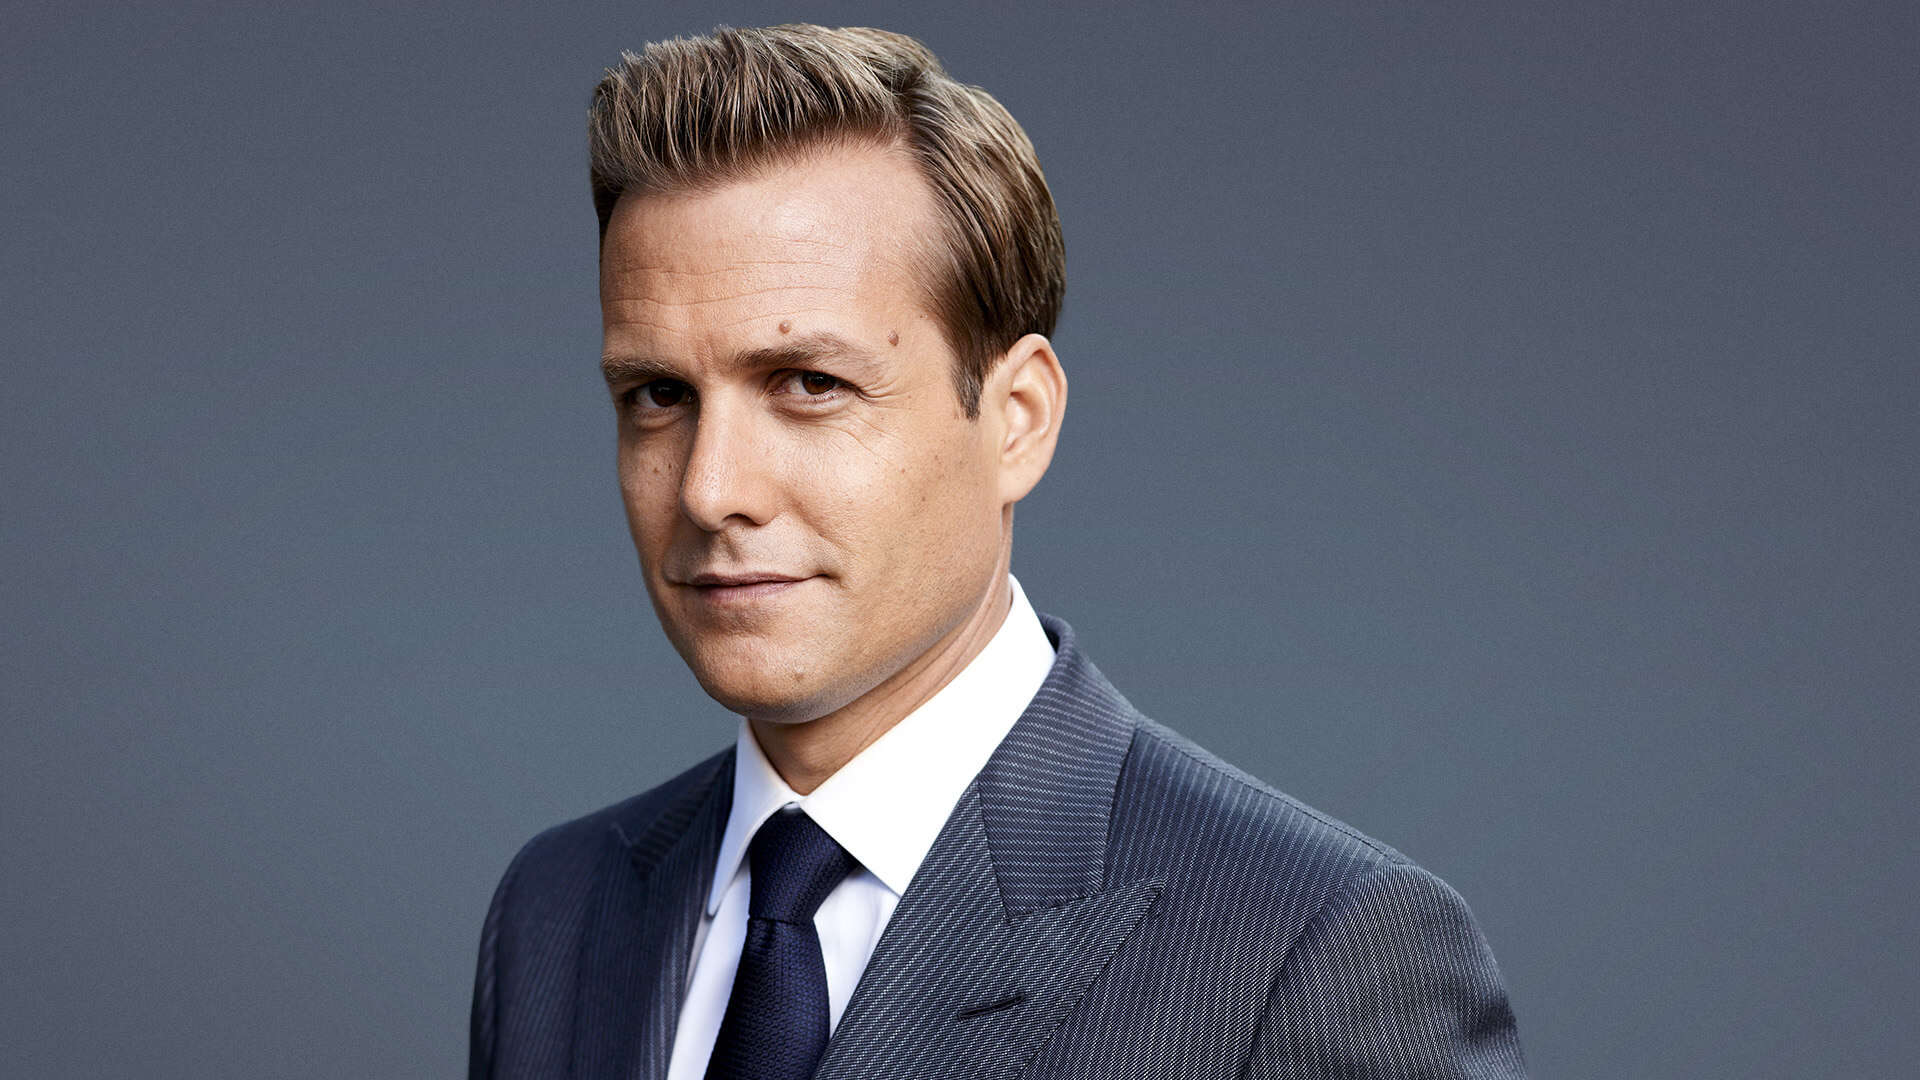 Suits Hd Wallpaper Quotes Suits Of Harvey Specter Amp How To Dress Like Him Hair